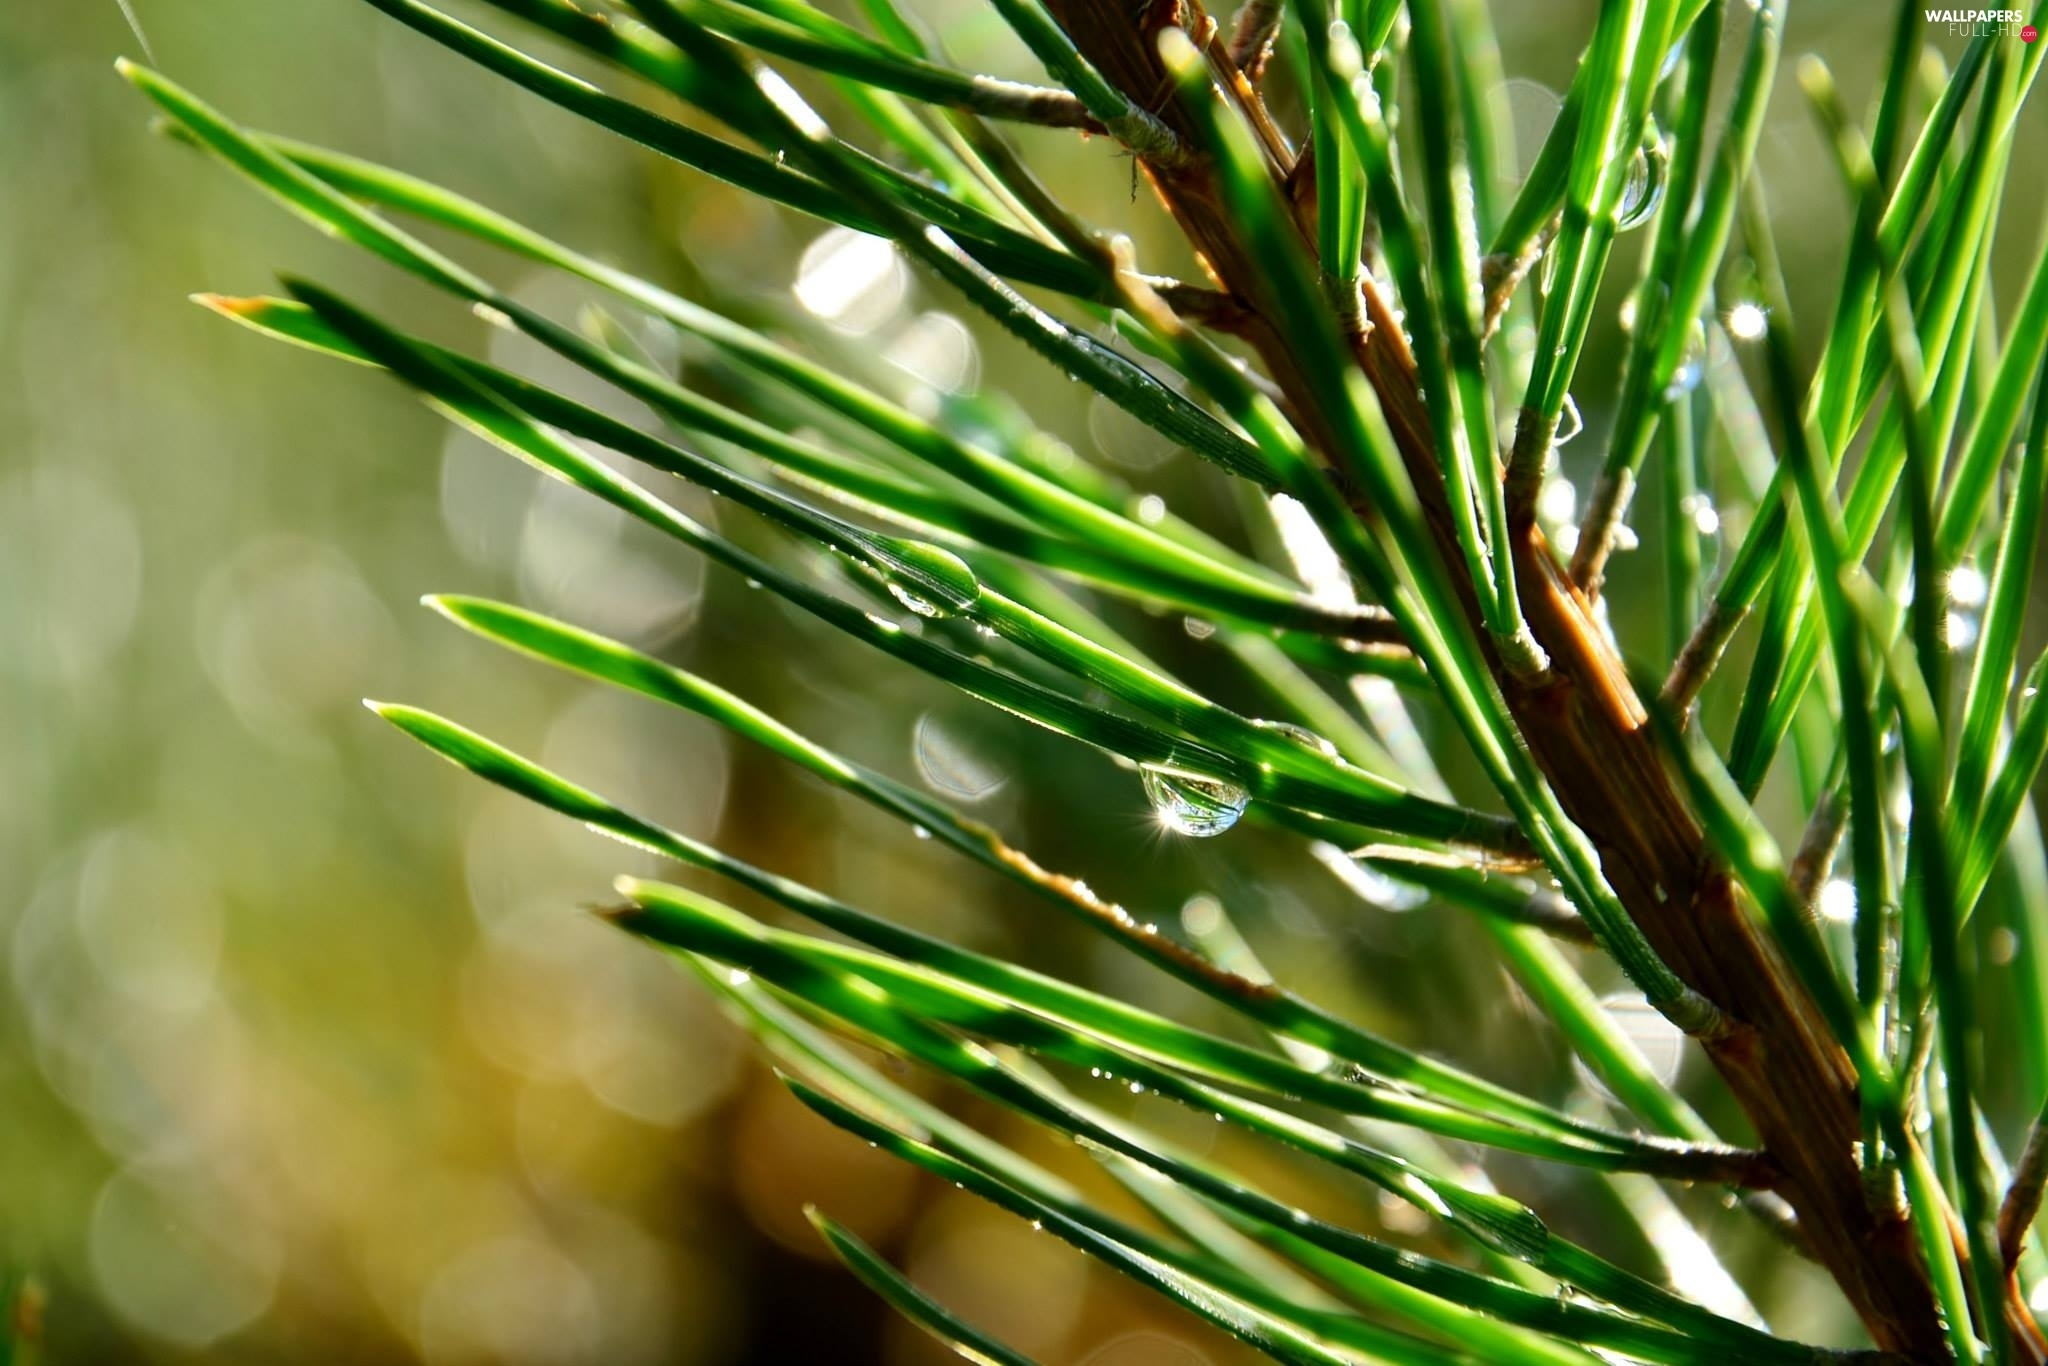 drops, spruce